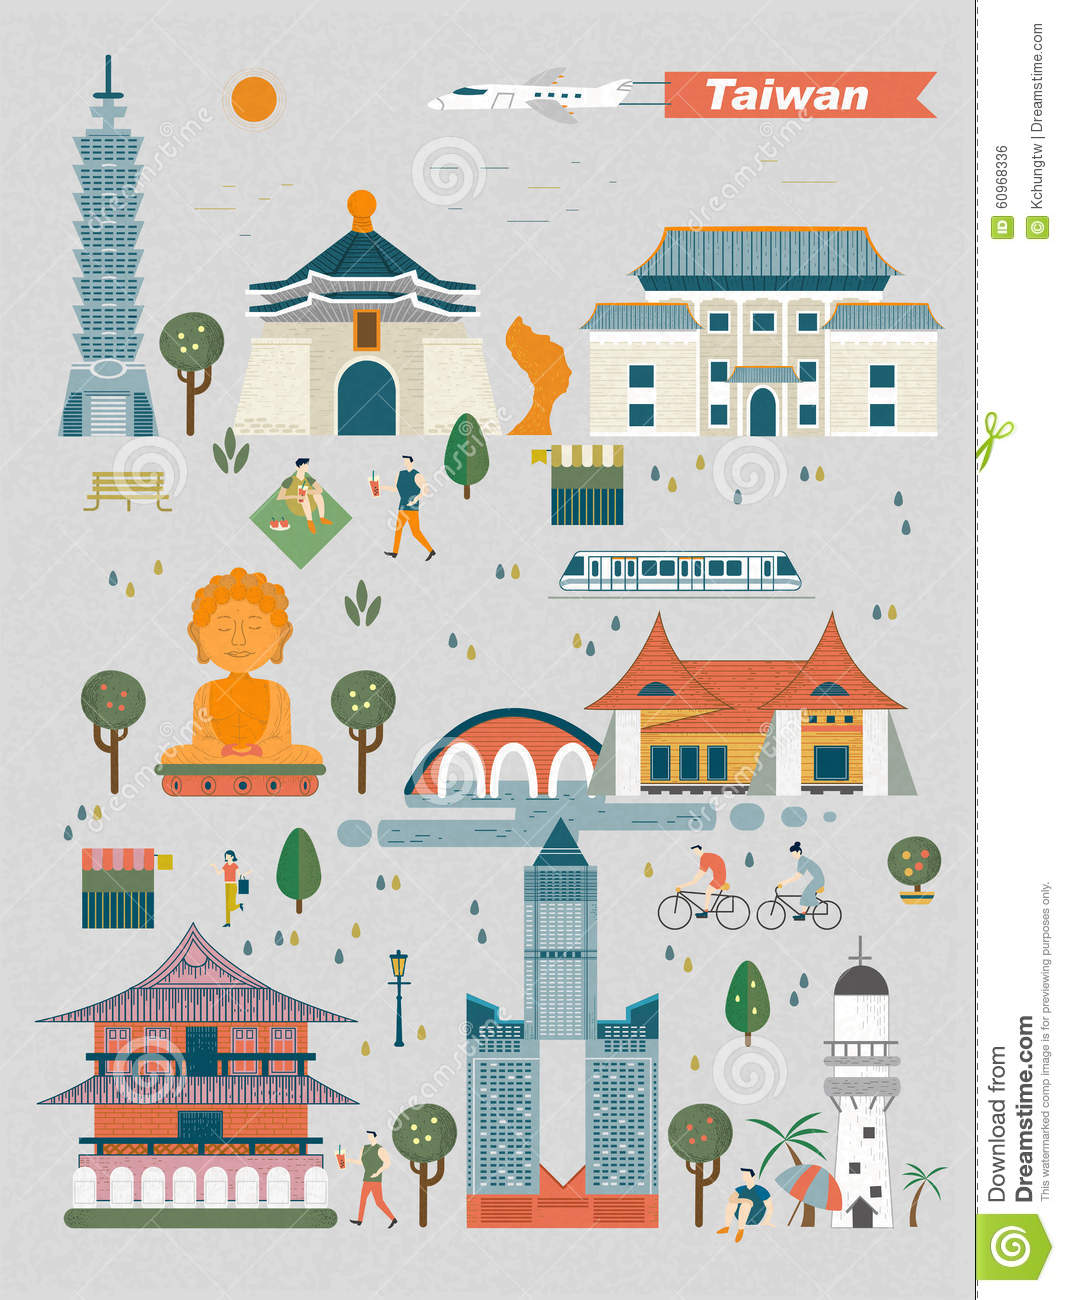 Building Workforce For Thailand 40 together with Nigeria as well 001063479 in addition A Cutting Edge Second Look At The Battle Of Gettysburg 1 180947921 as well Cherry Blossoms Festival. on taiwan culture map